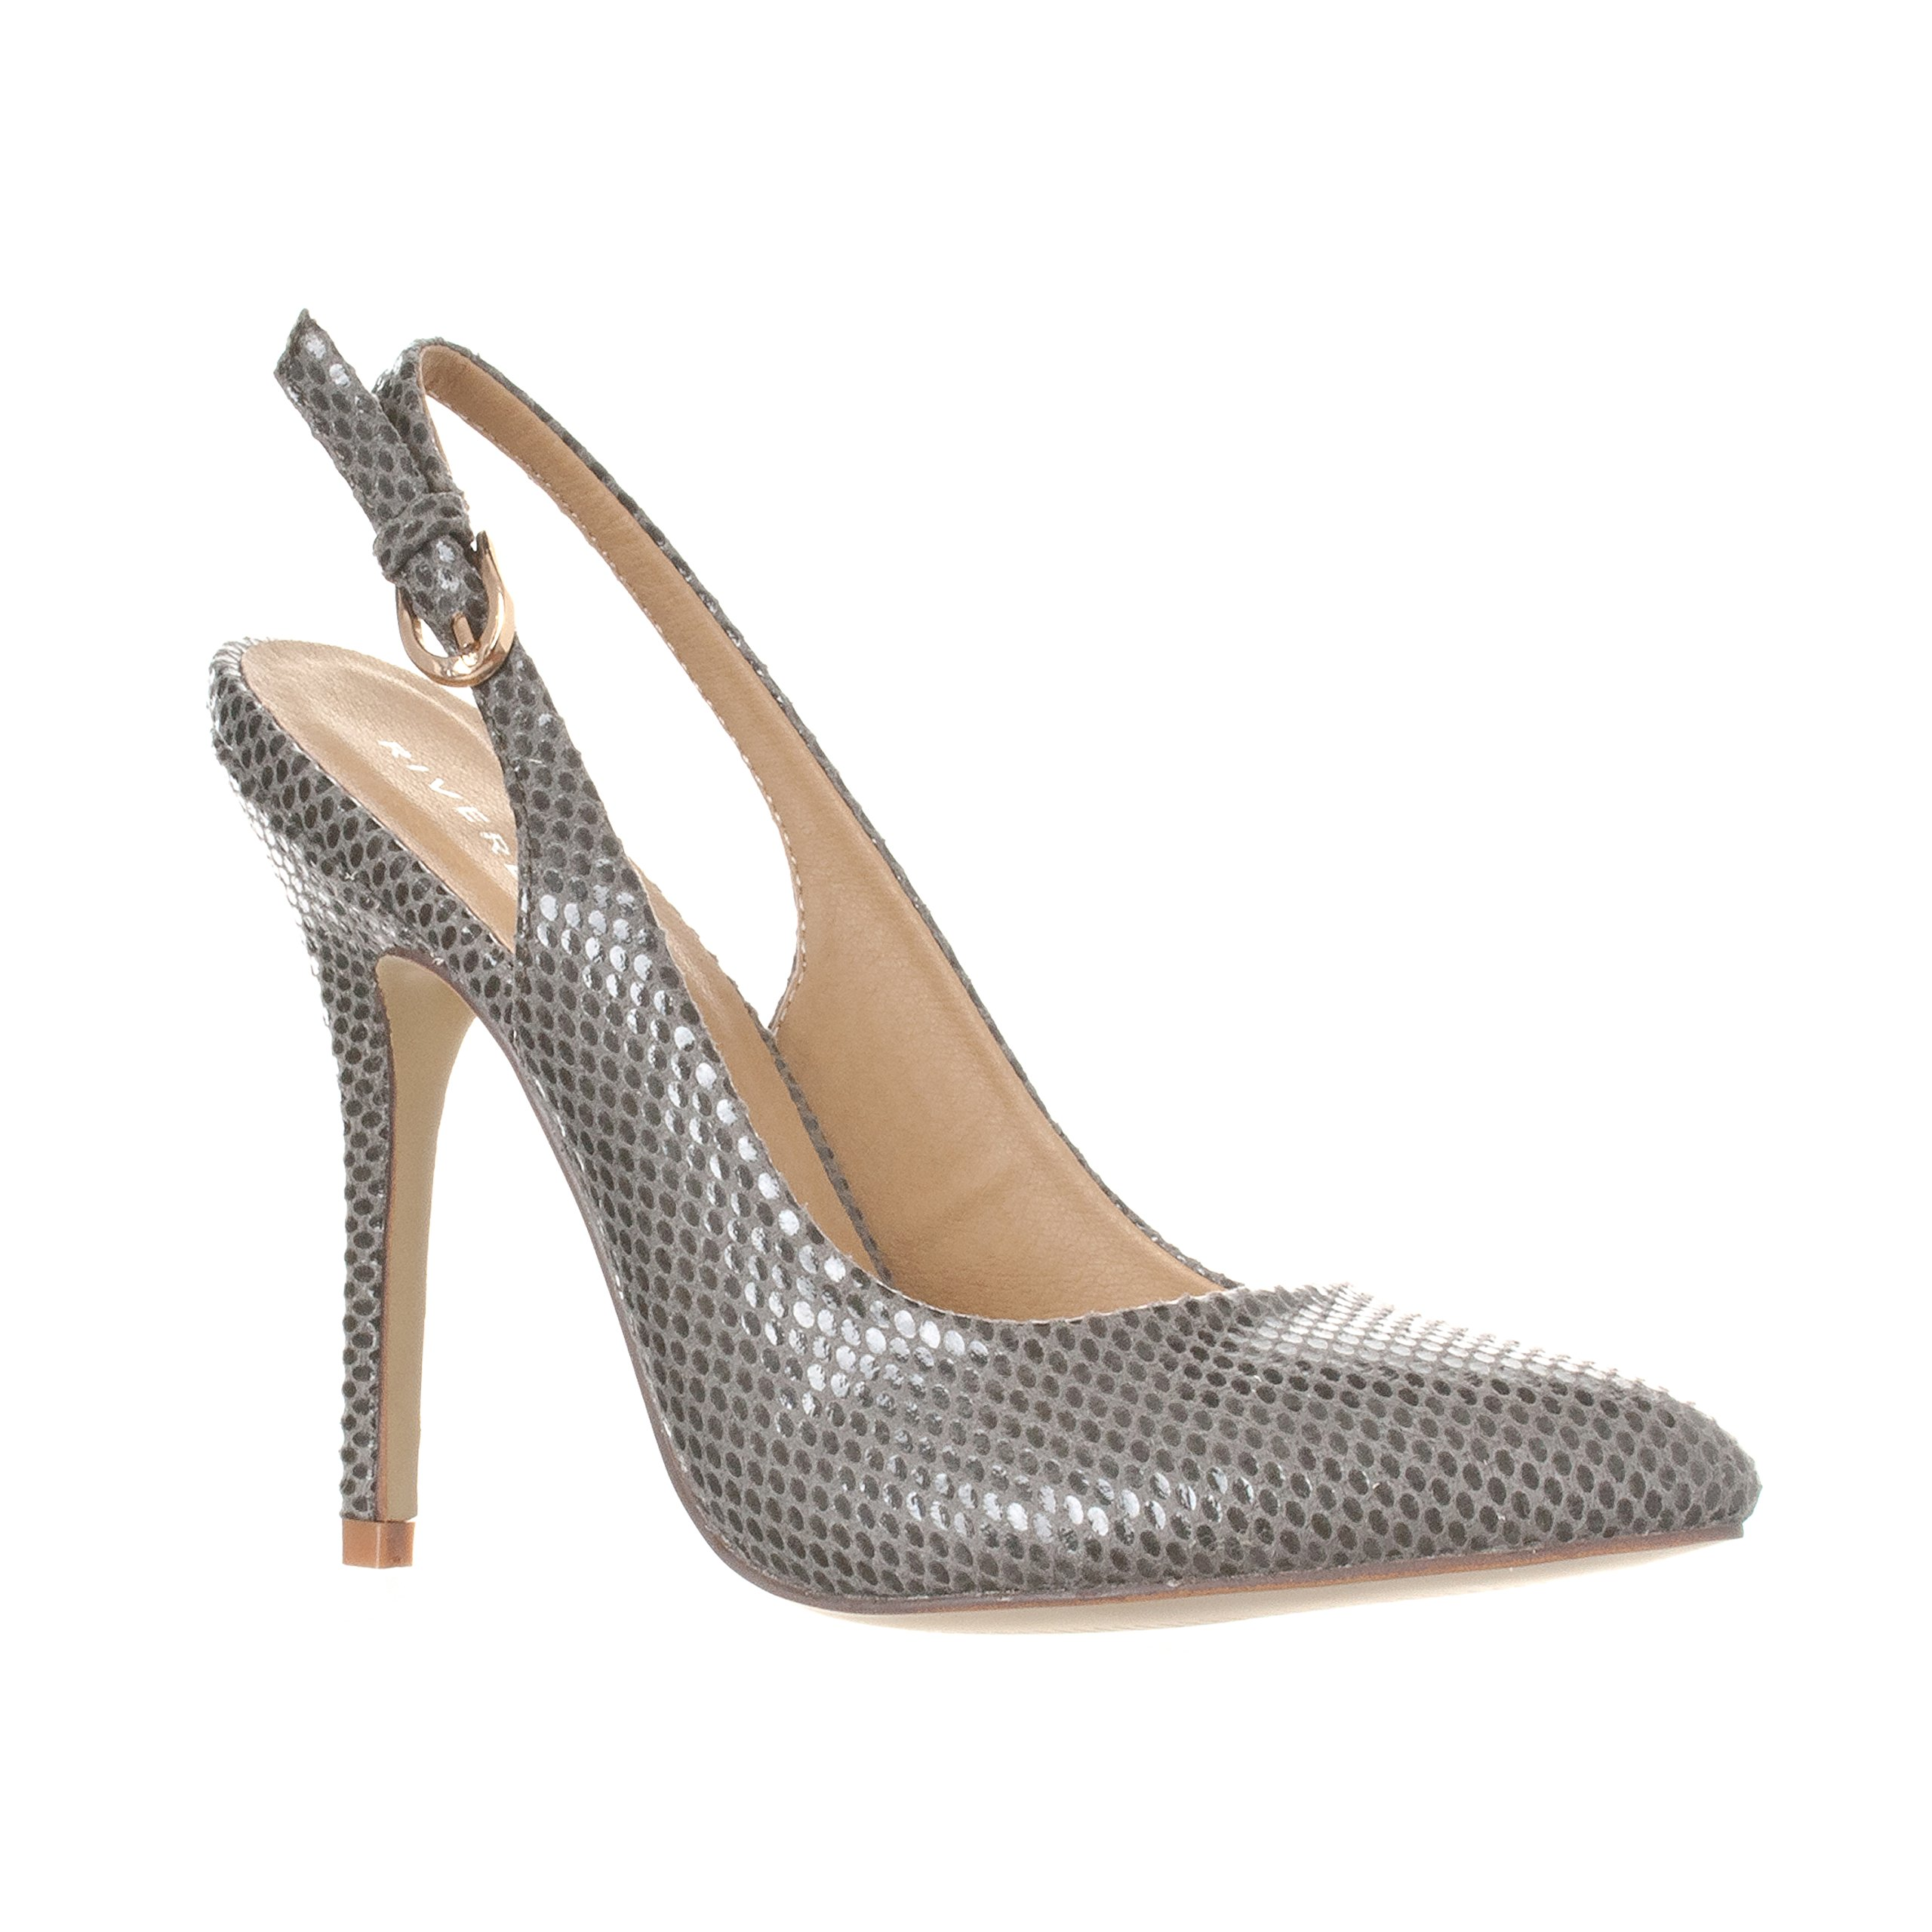 Riverberry Women's Lucy Pointed-Toe, Sling Back Pump Stiletto Heels, Grey Snake, 8